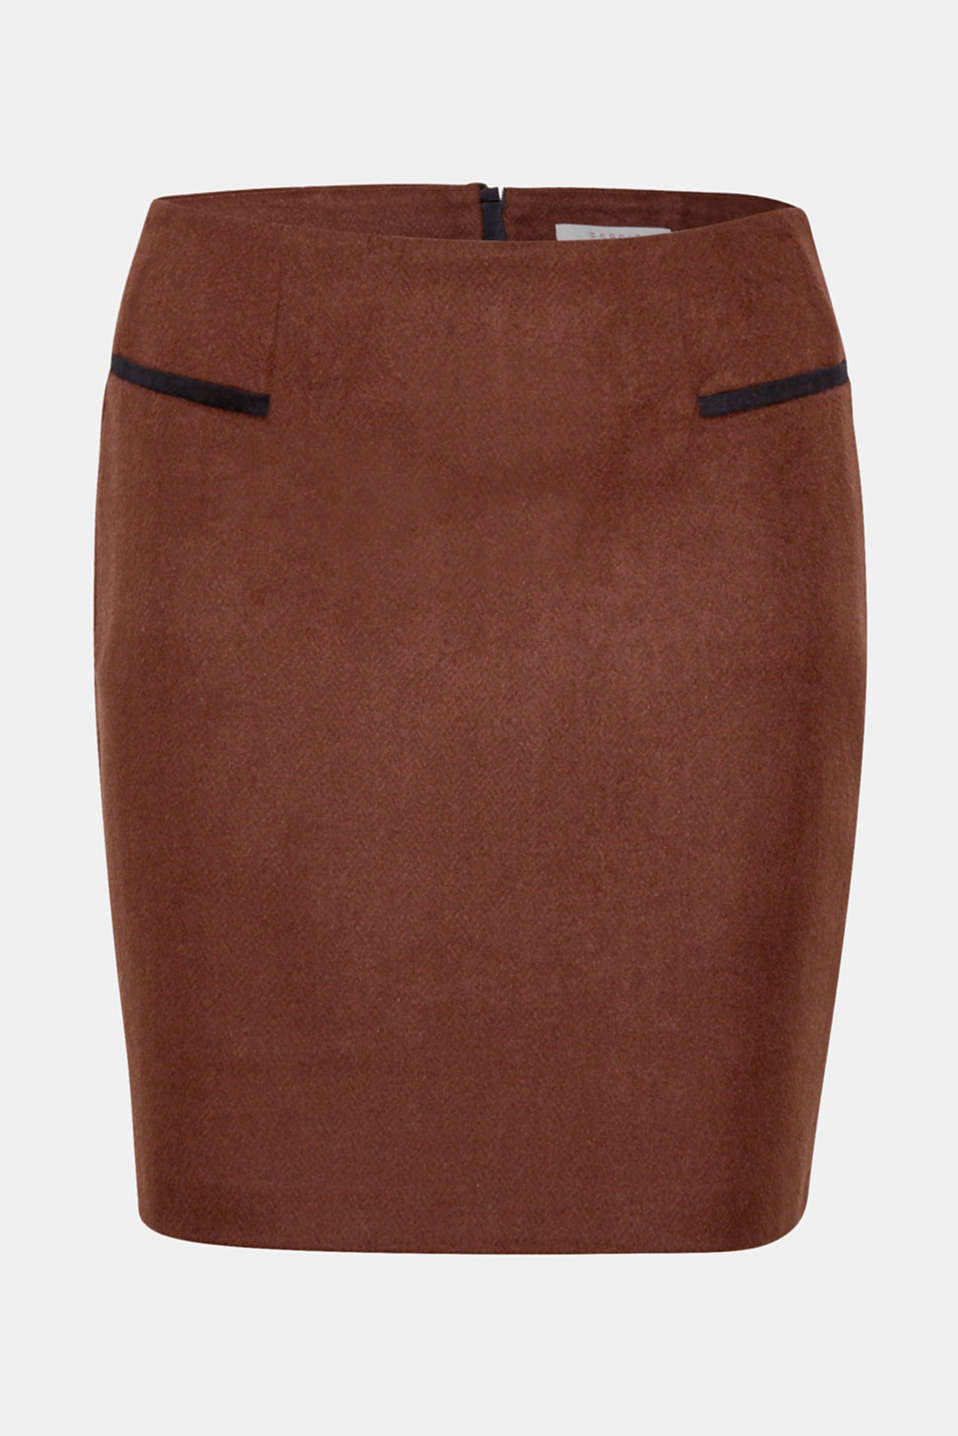 A brushed outer surface meets up with a fine herringbone pattern - a unique combination which gives this blended wool skirt with velvet trims its trendy look.